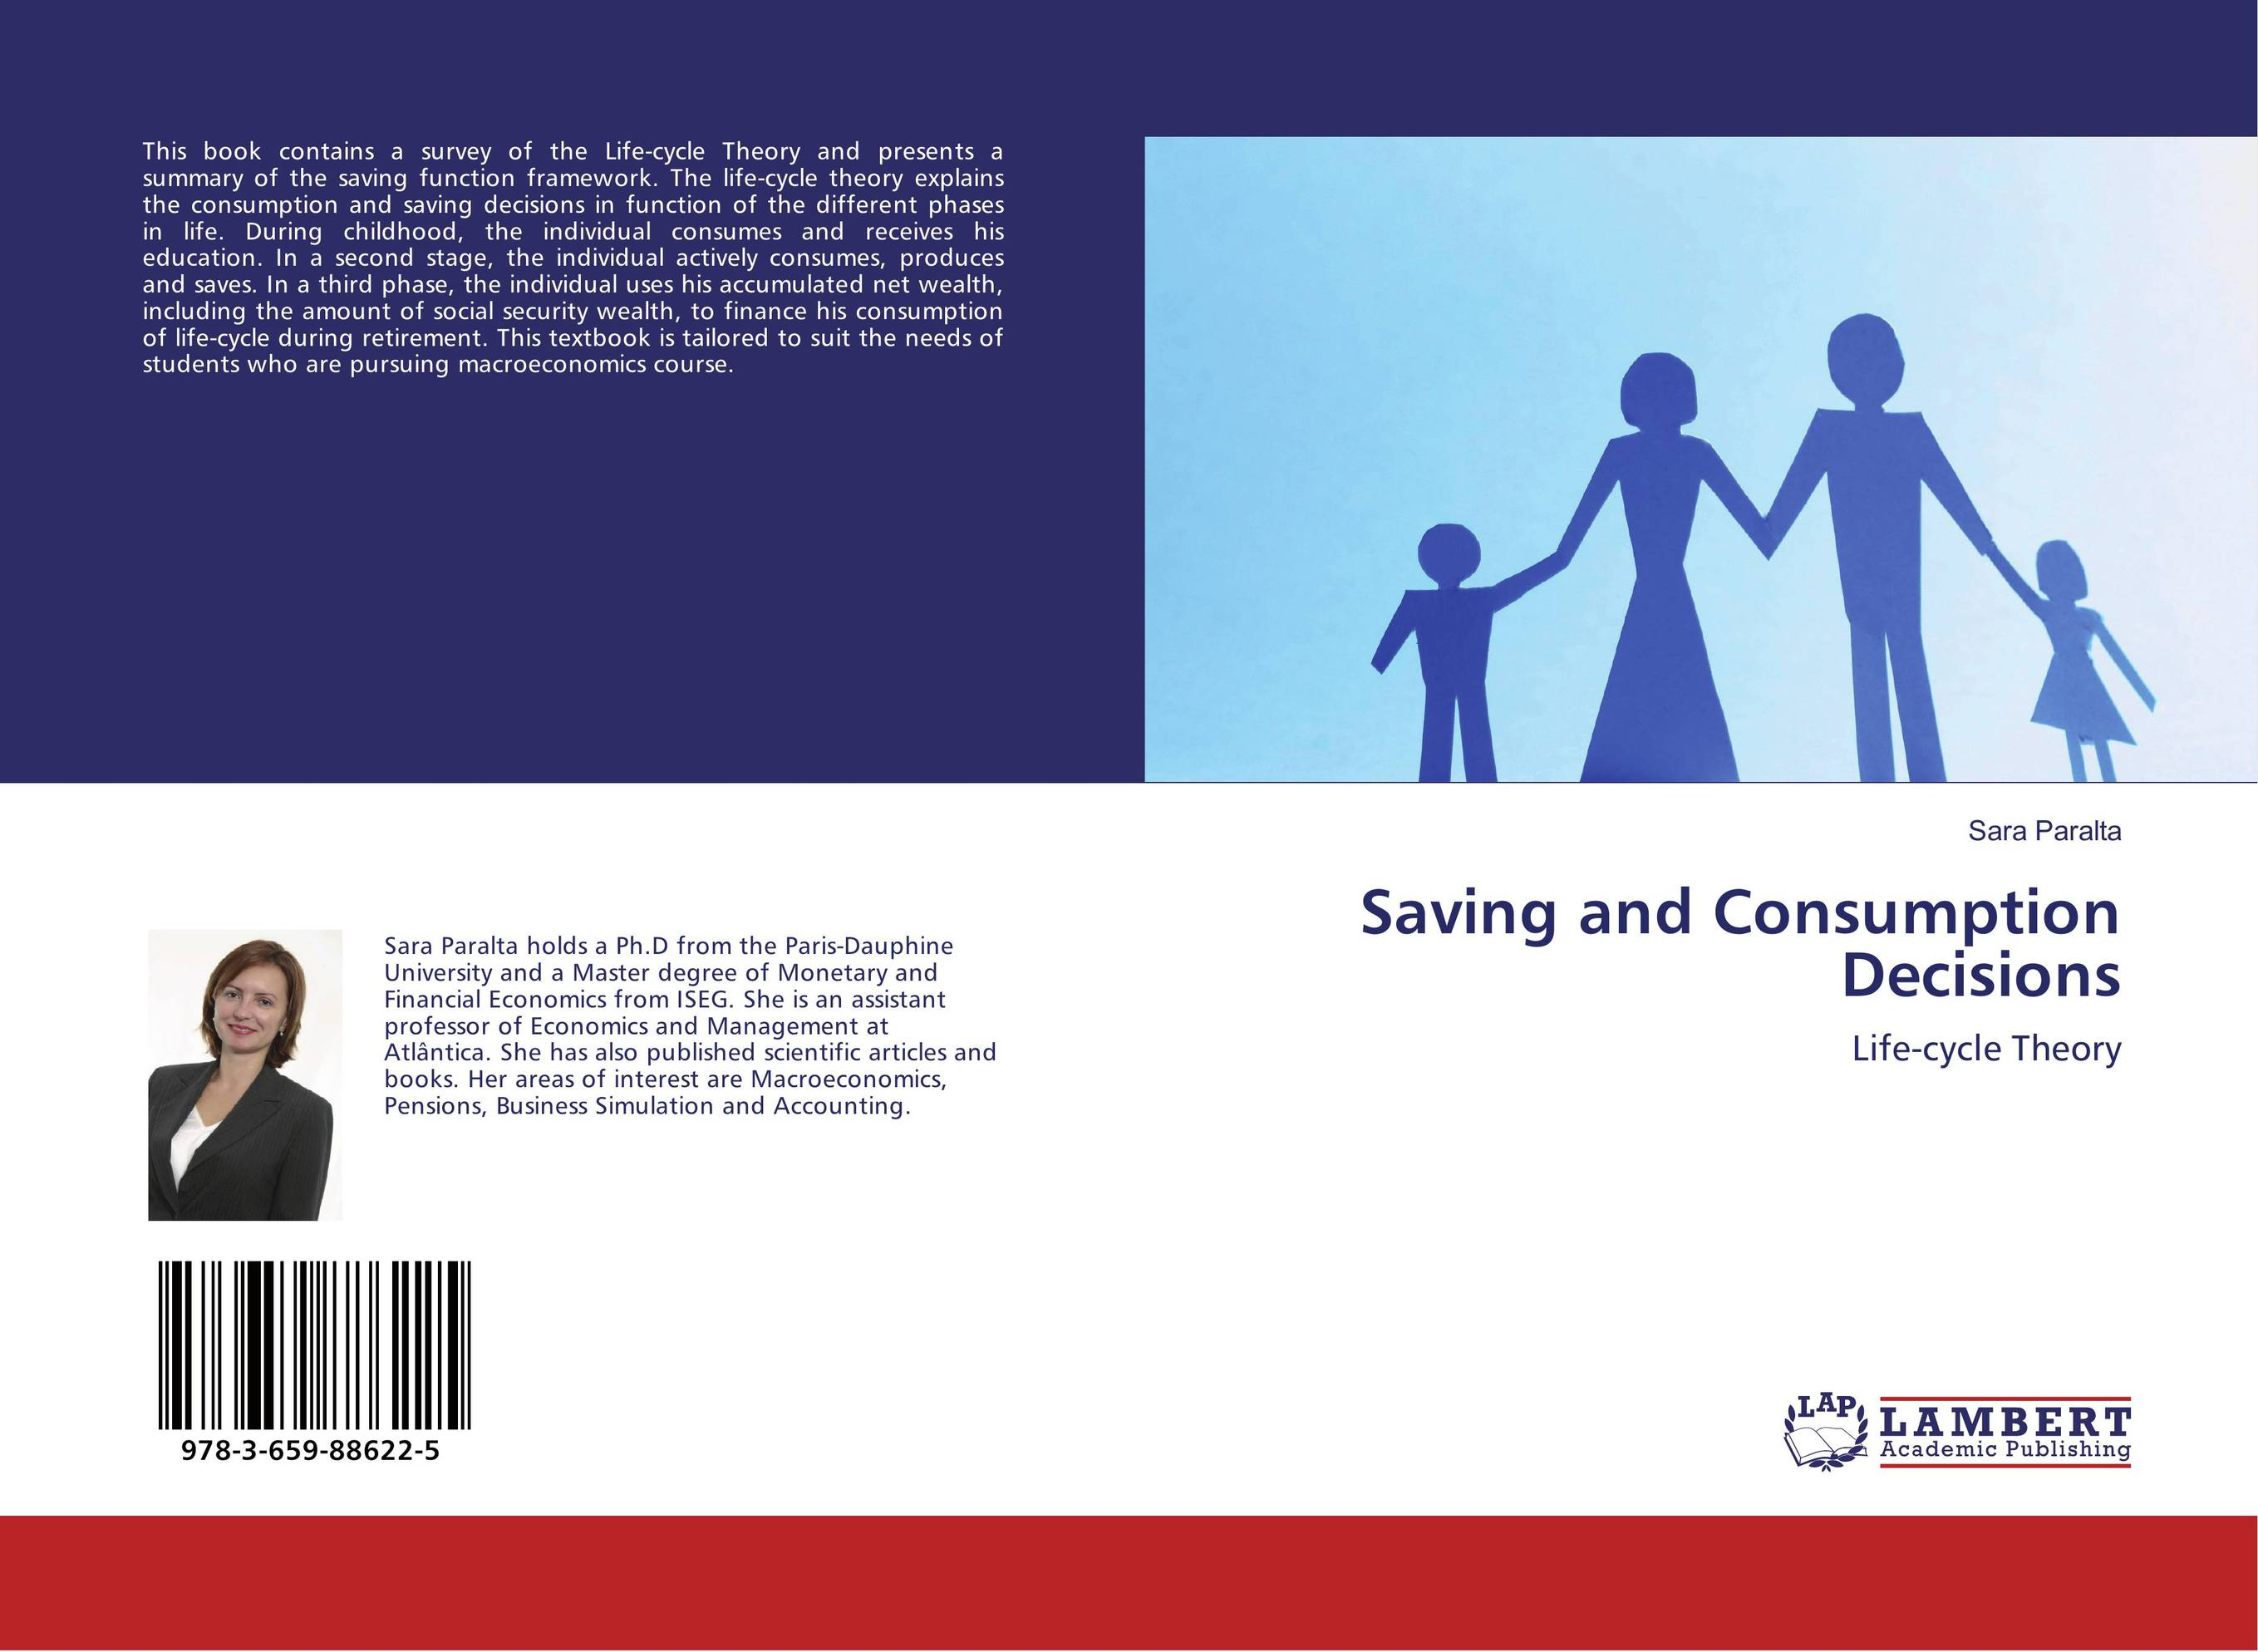 Saving and Consumption Decisions course enrollment decisions